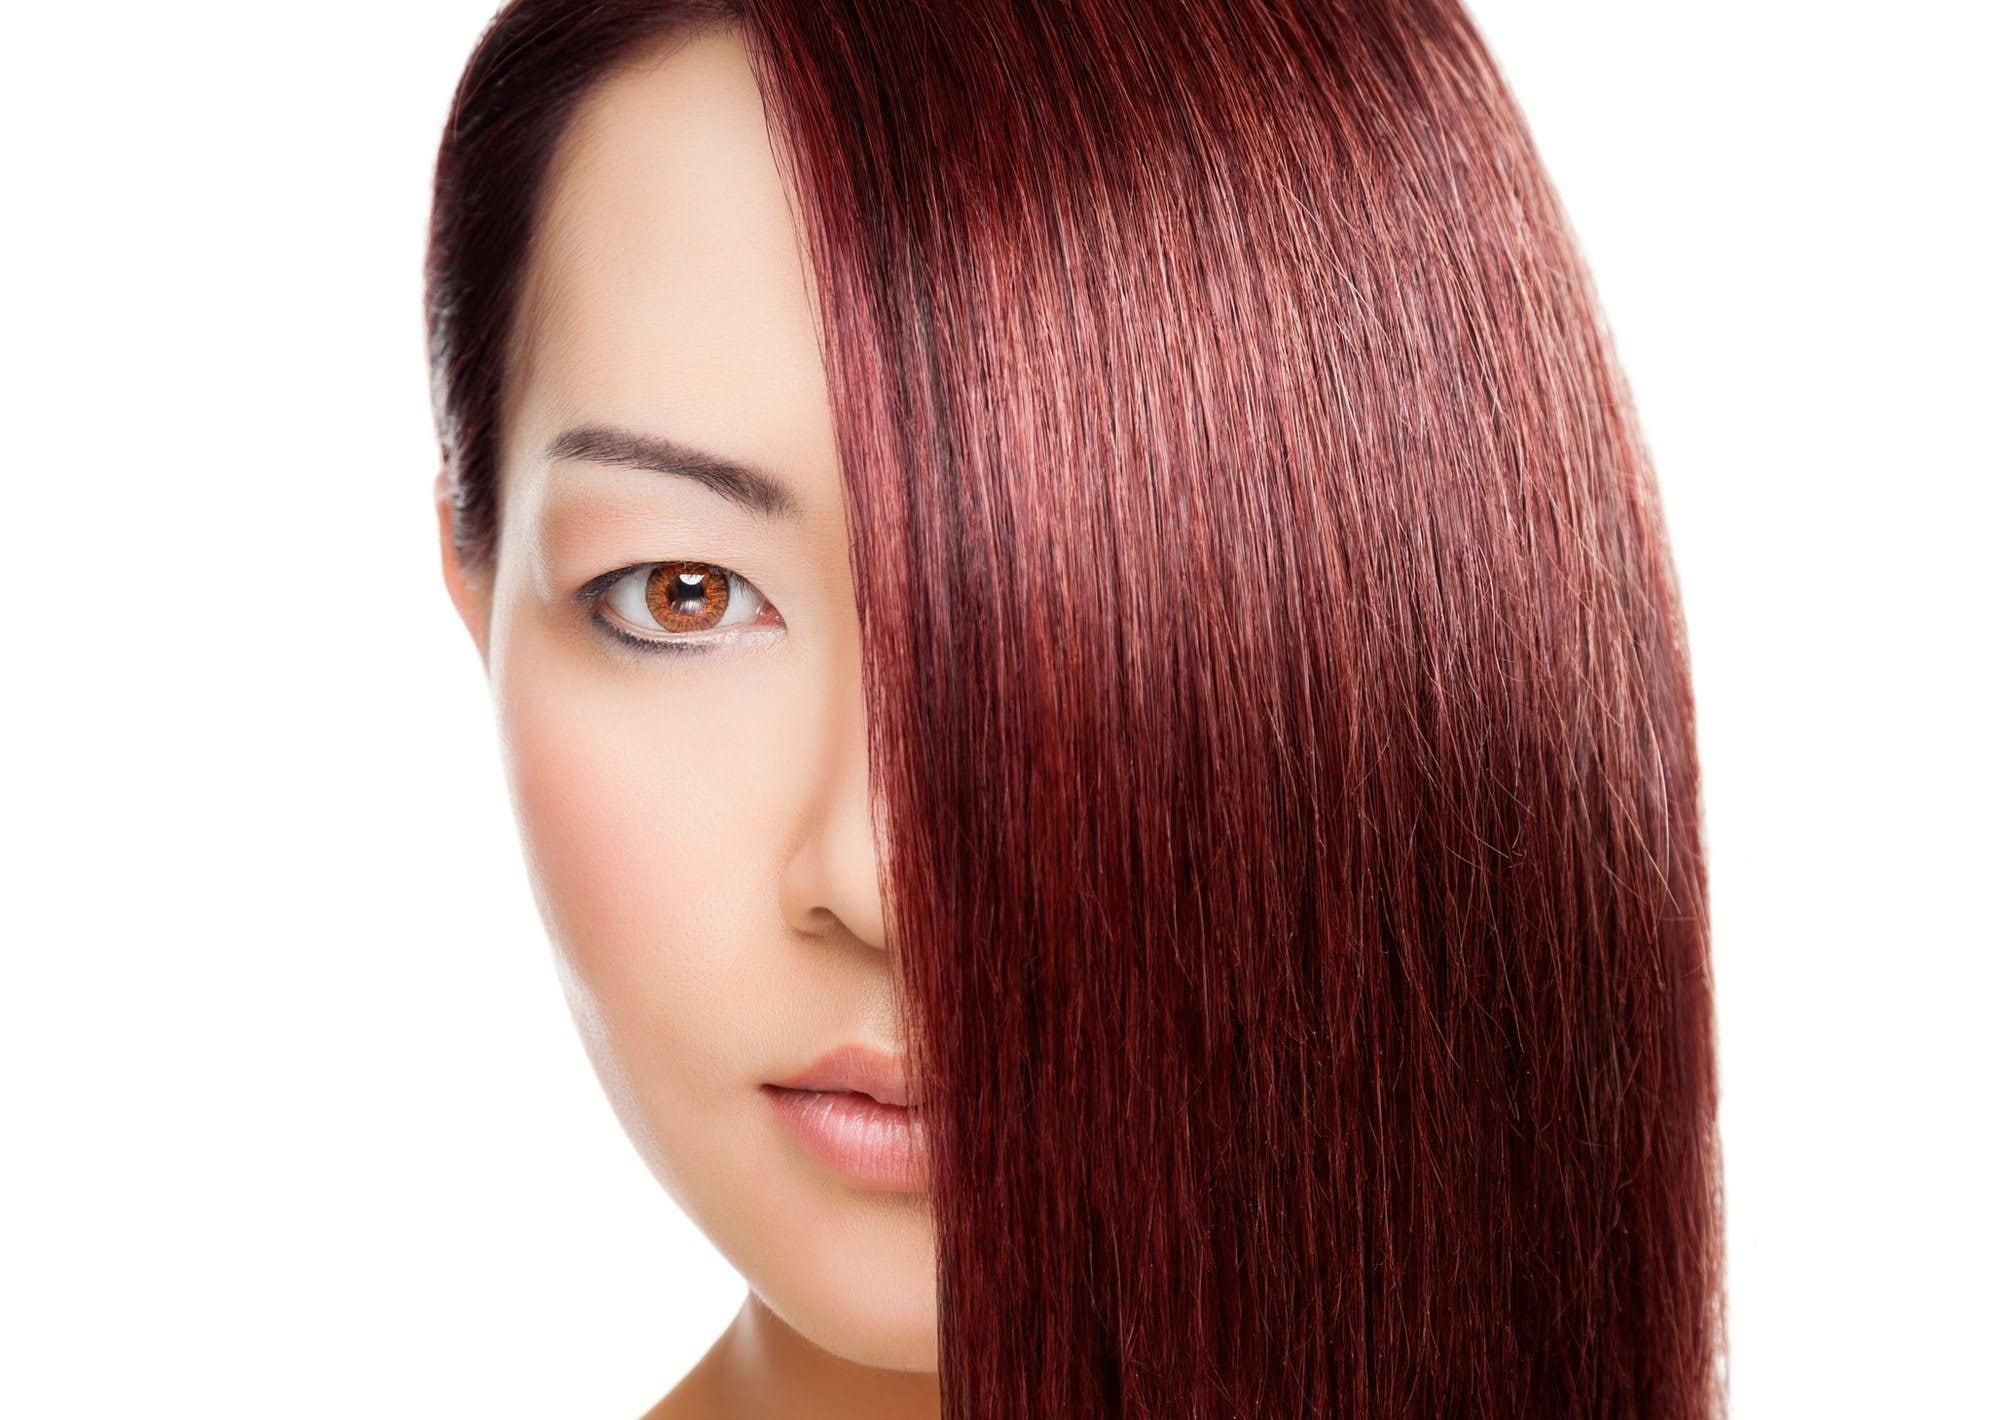 How To Care For Freshly Dyed Hair